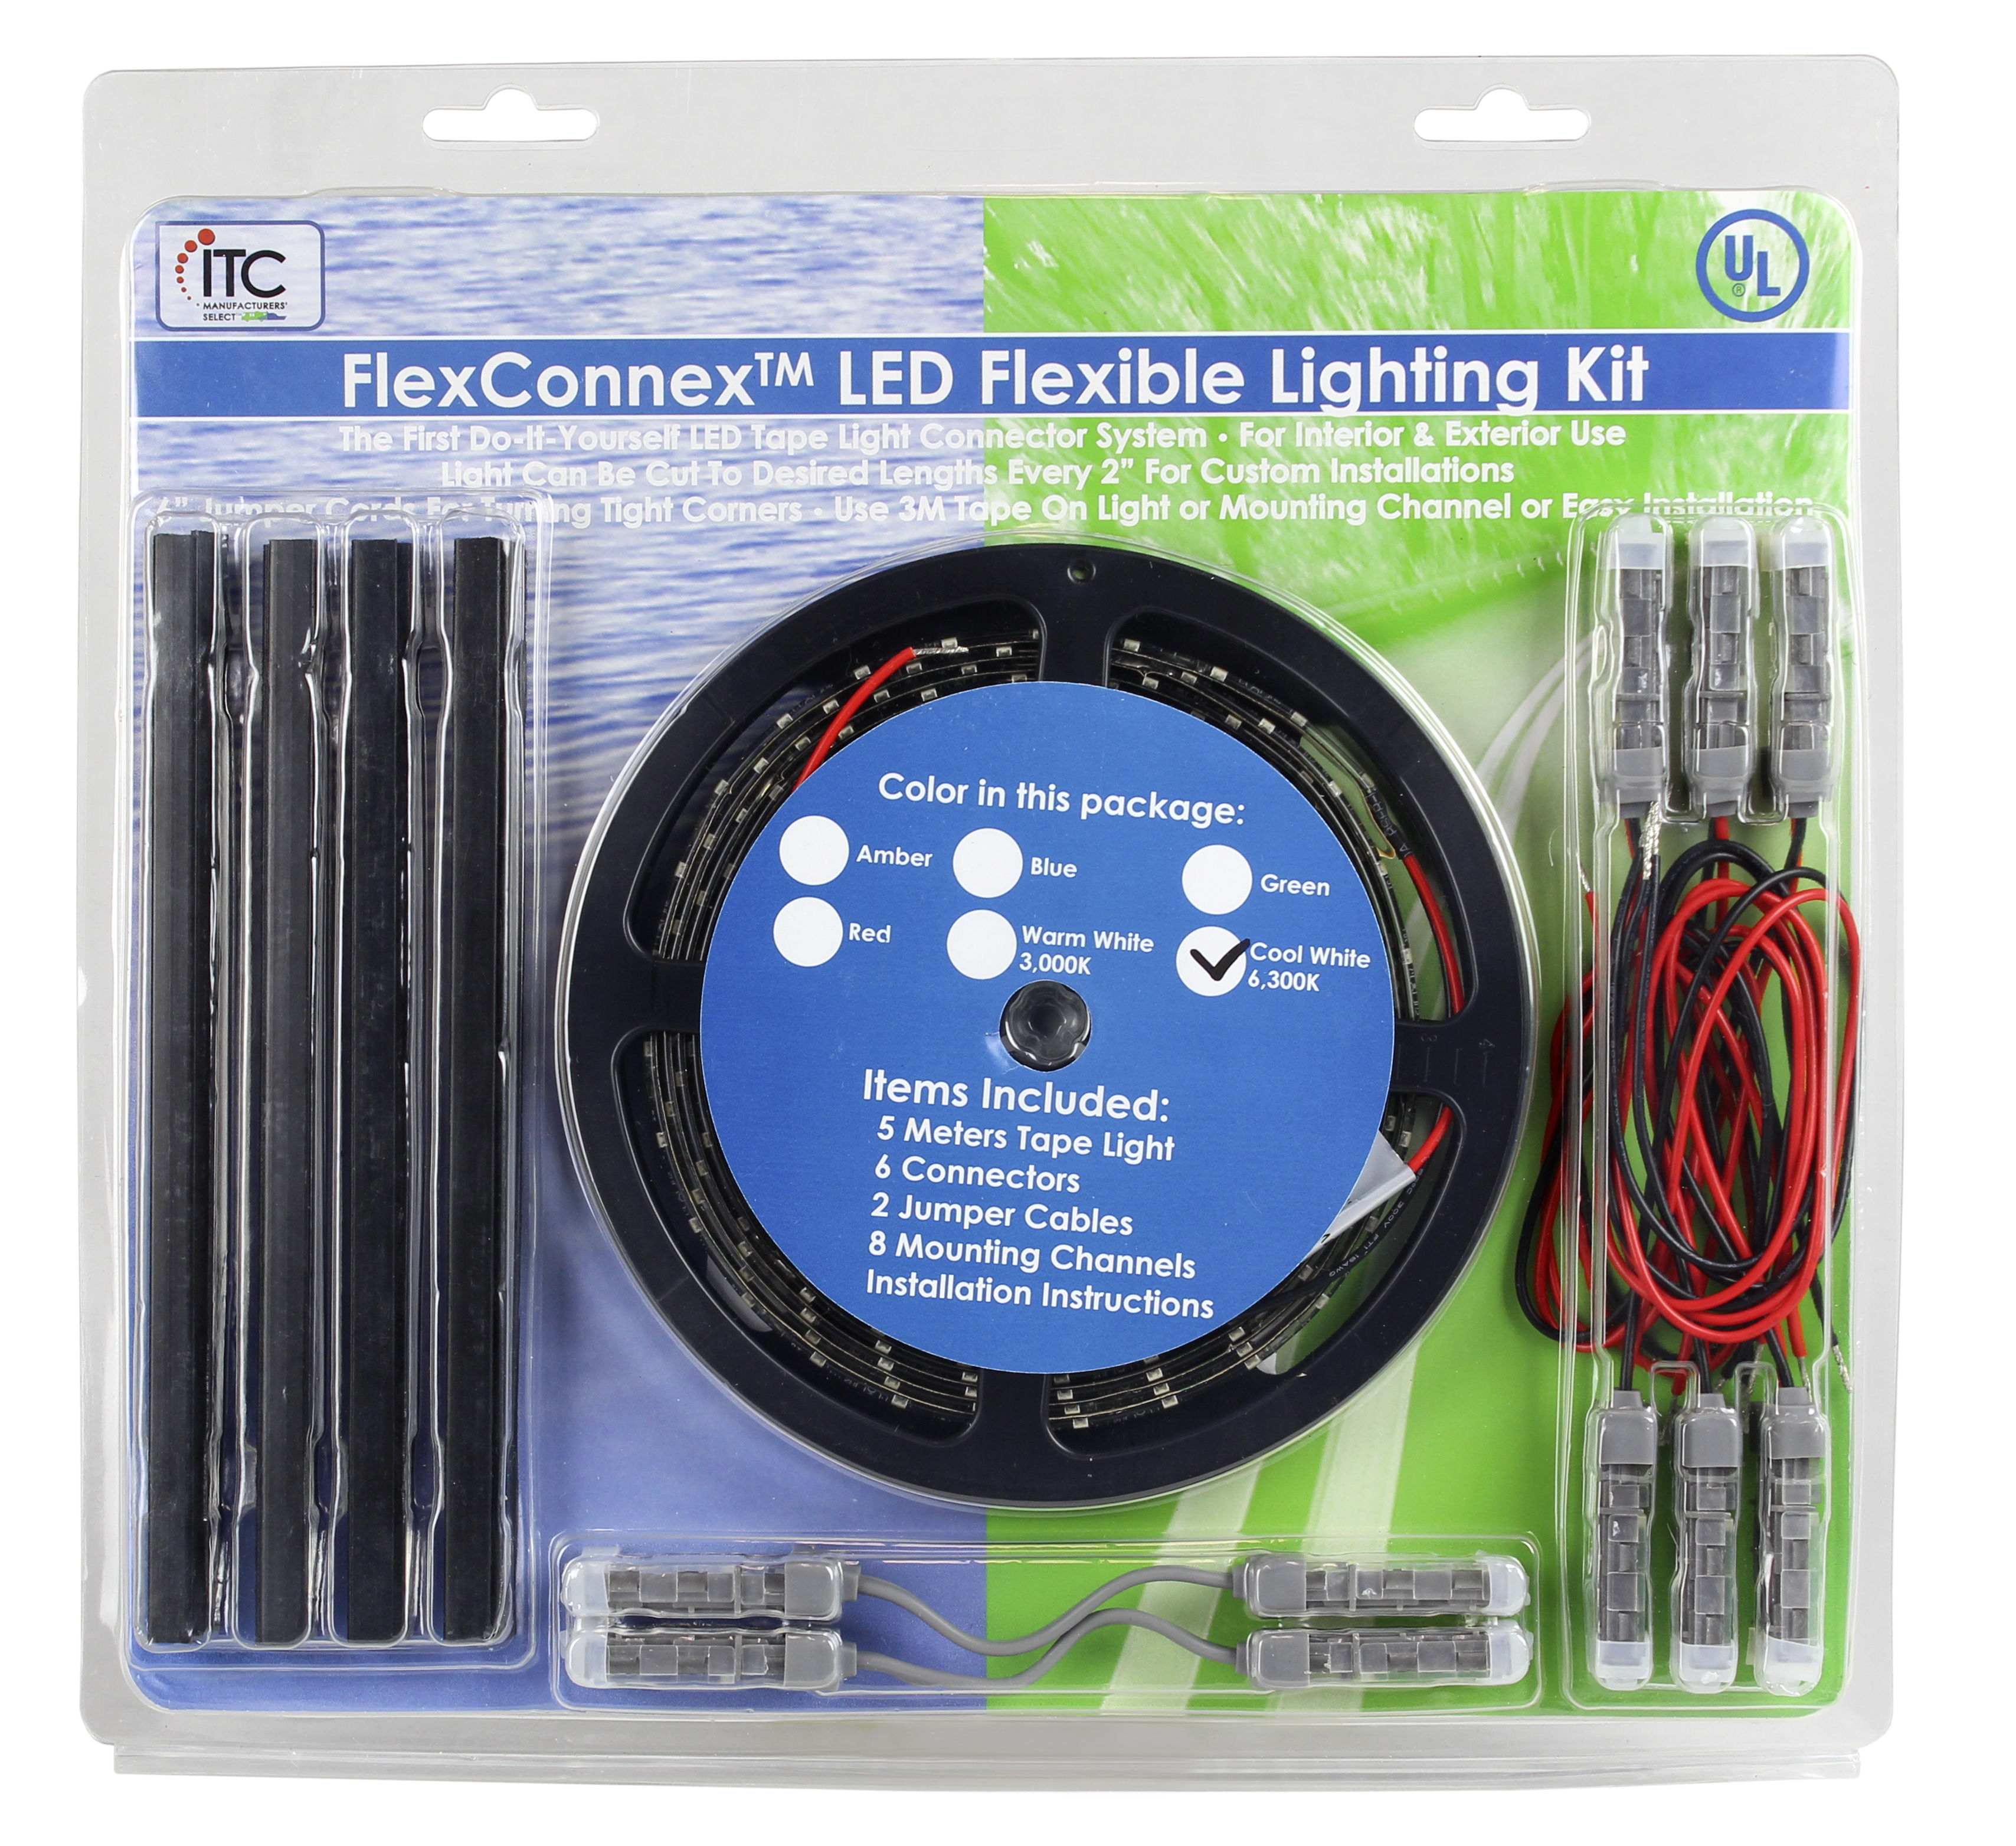 Itc Incorp Tpe12bl 50012 D Rope Light Led Flexconnex Tm 5 Meter Electrical Wiring Channels Length 13 Volt Blue With 6 Connectors 8 Mounting And Installation Instructions